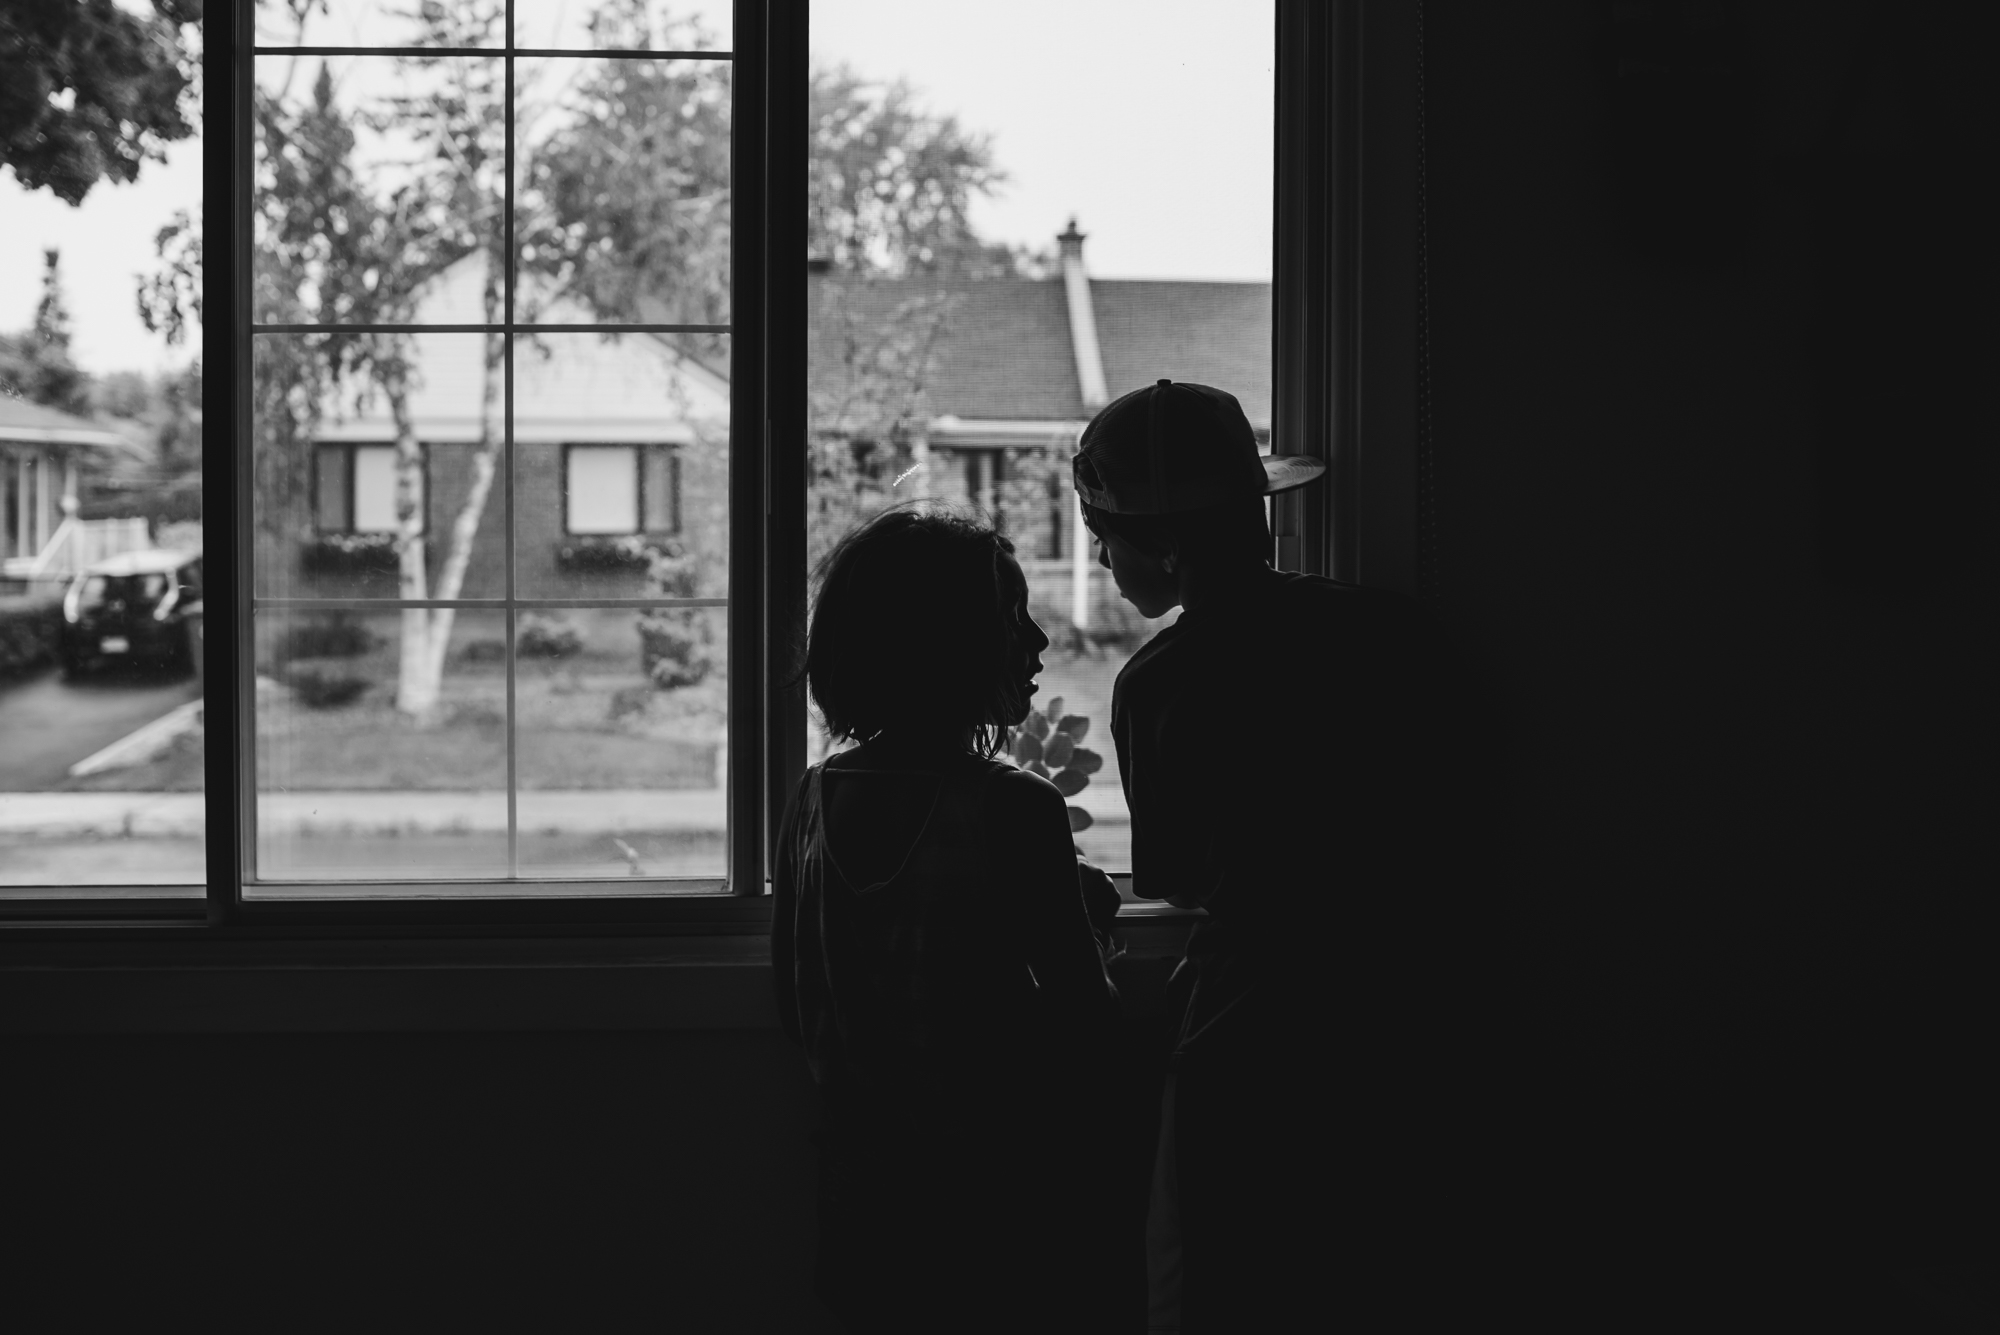 a boy and a girls looking out the window